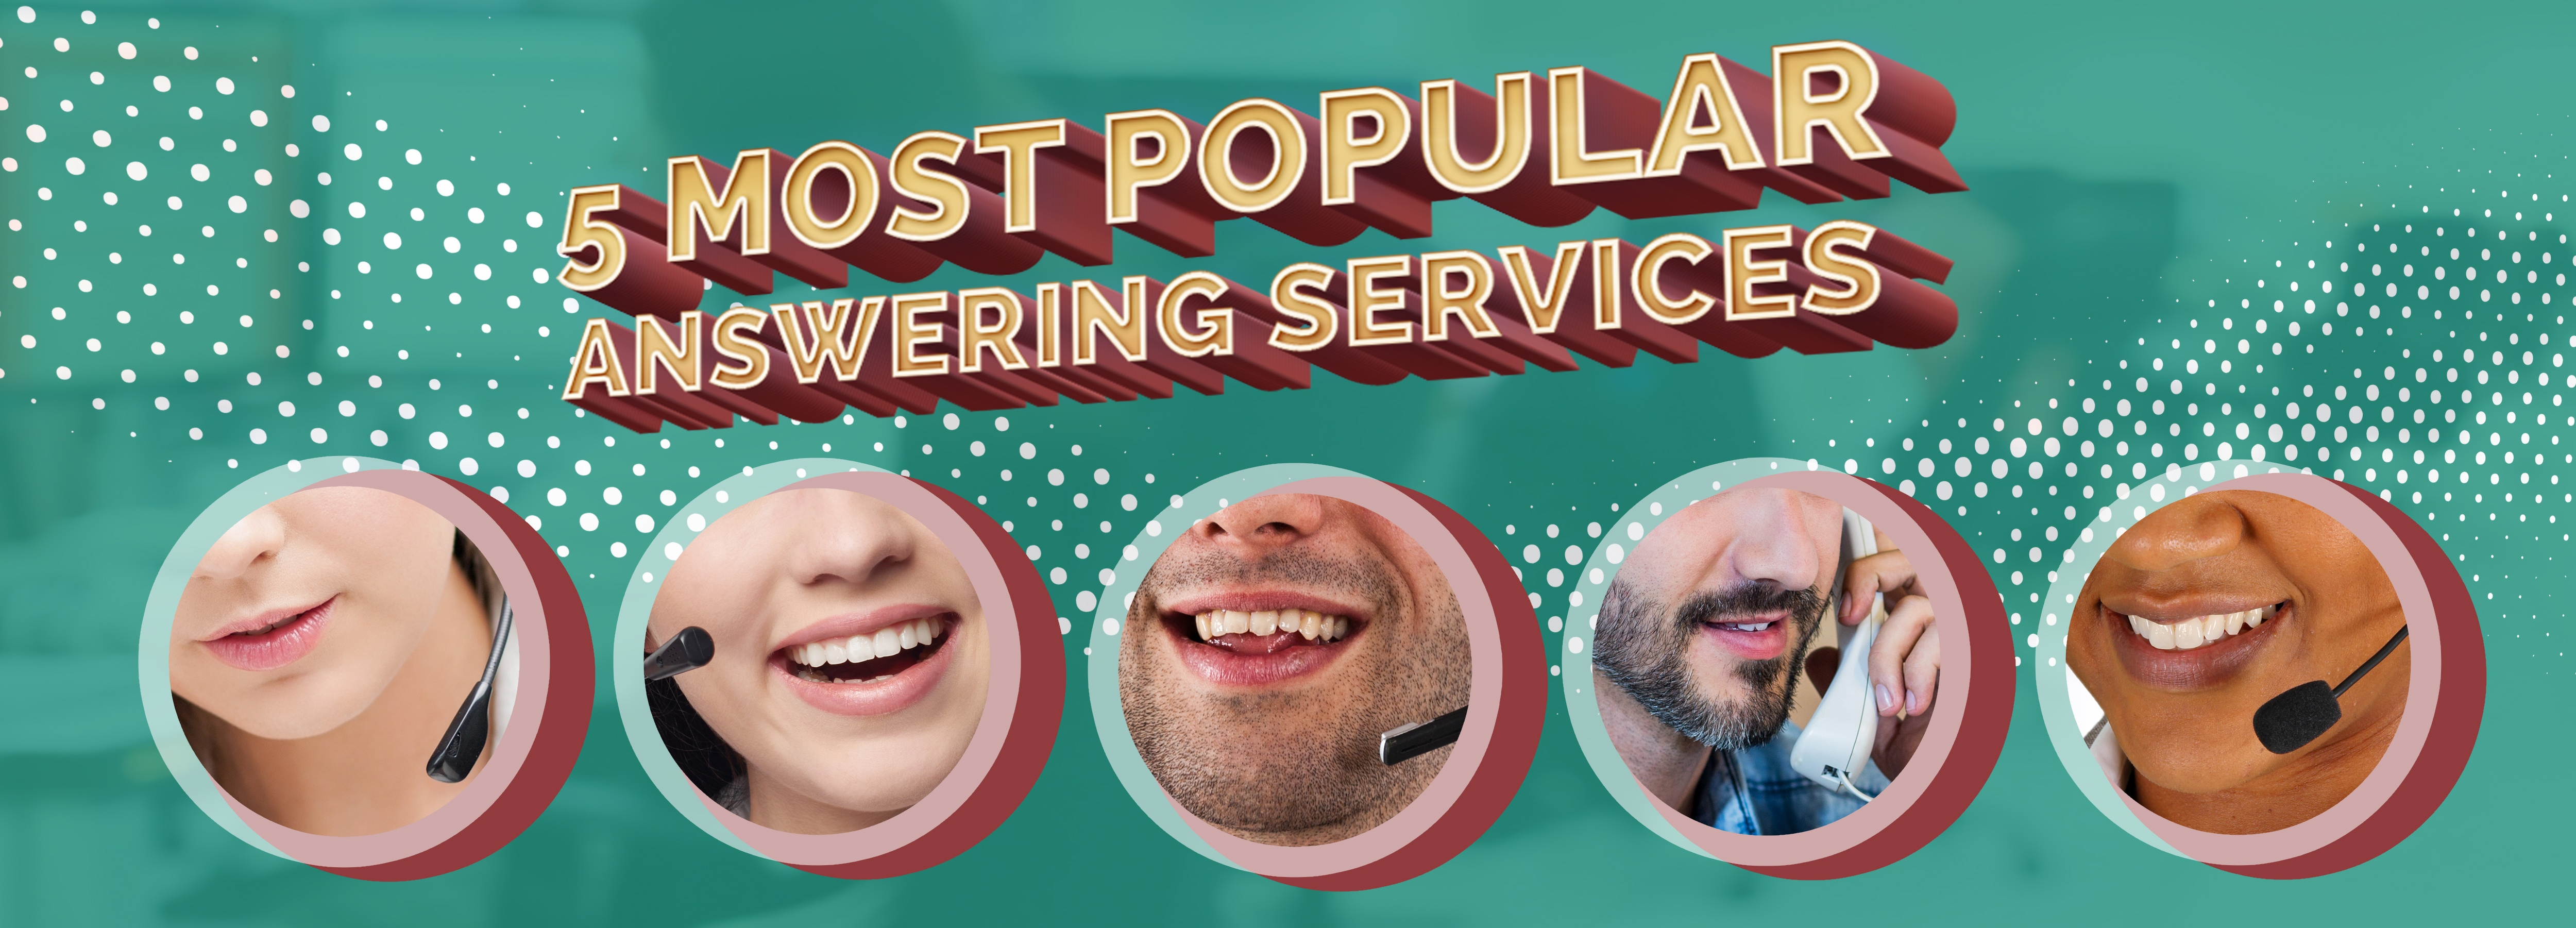 The 5 Most Popular Answering Services